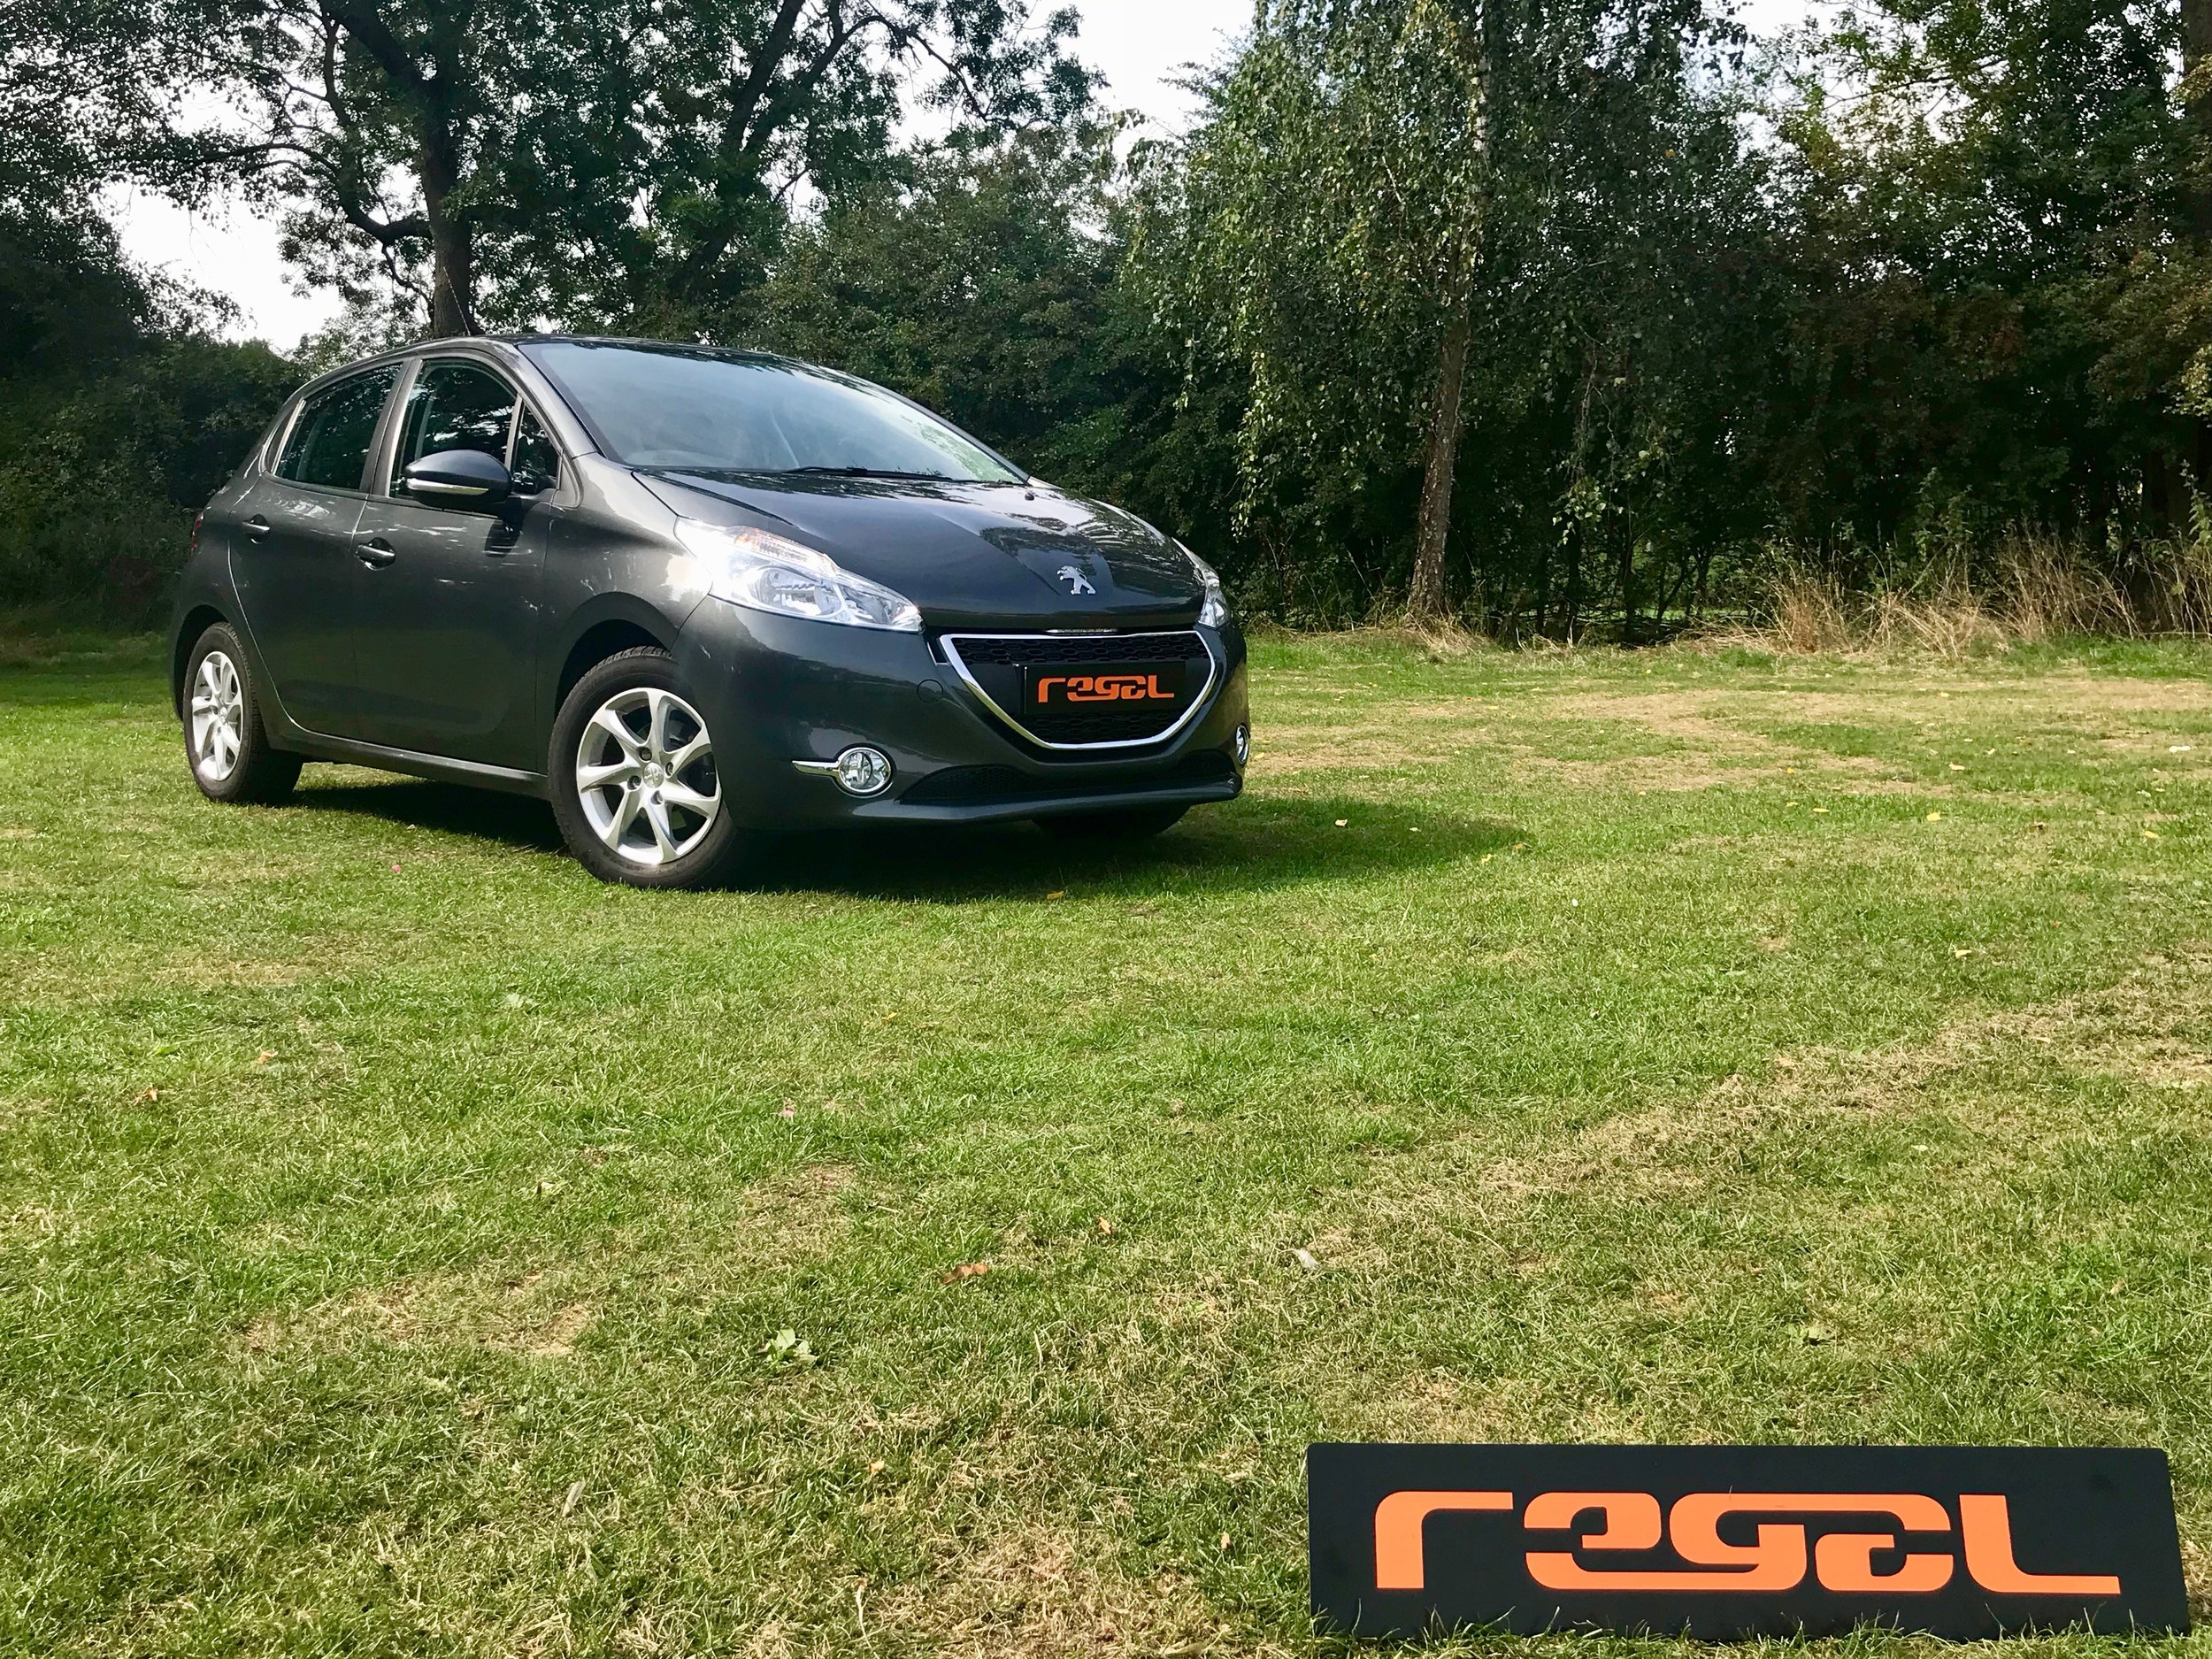 peugeot-208-vti-active-forsale-regalmotion-regalpreowned-usedcar-redditch-bromsgrove-worcestershire-6479-47.jpeg